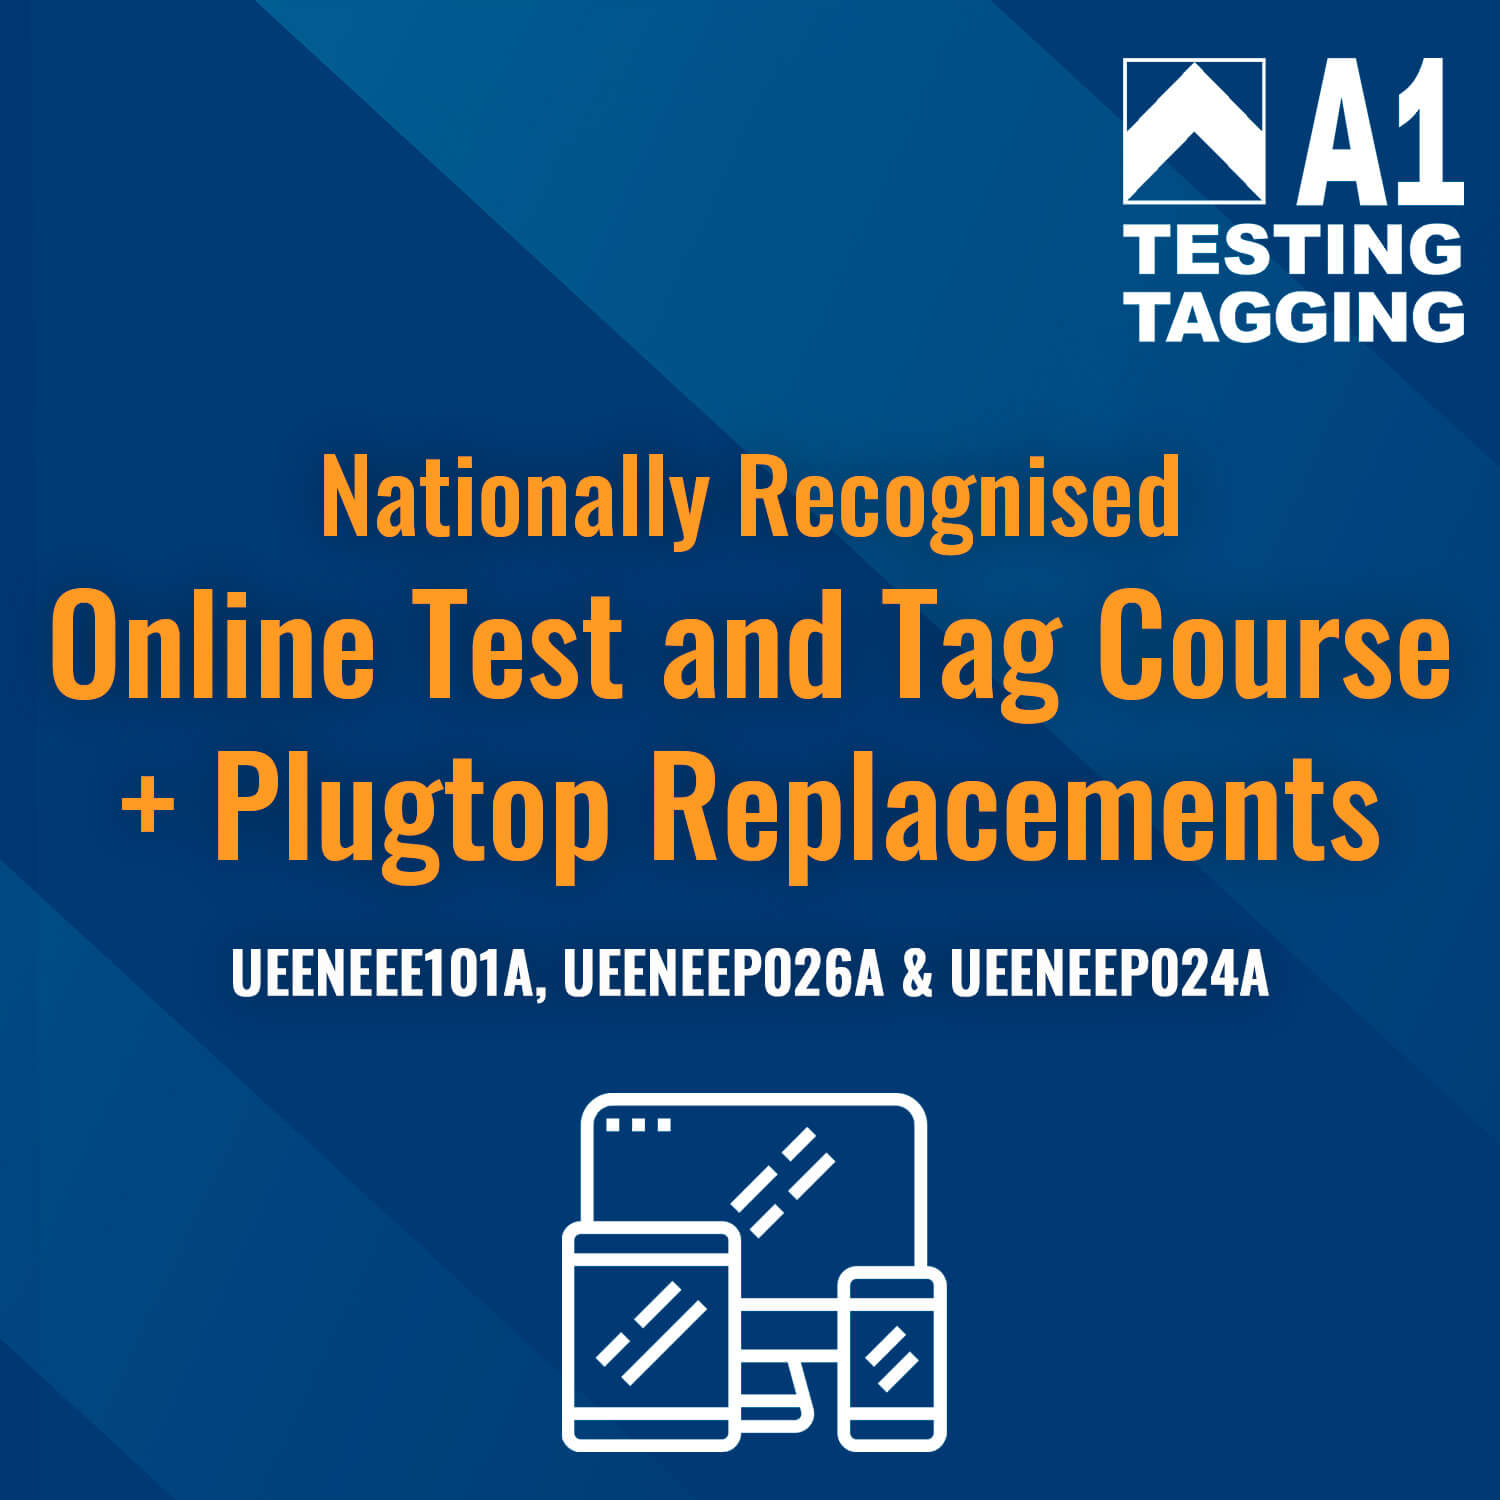 Online Test and Tag Course + Fit Plugs and Sockets